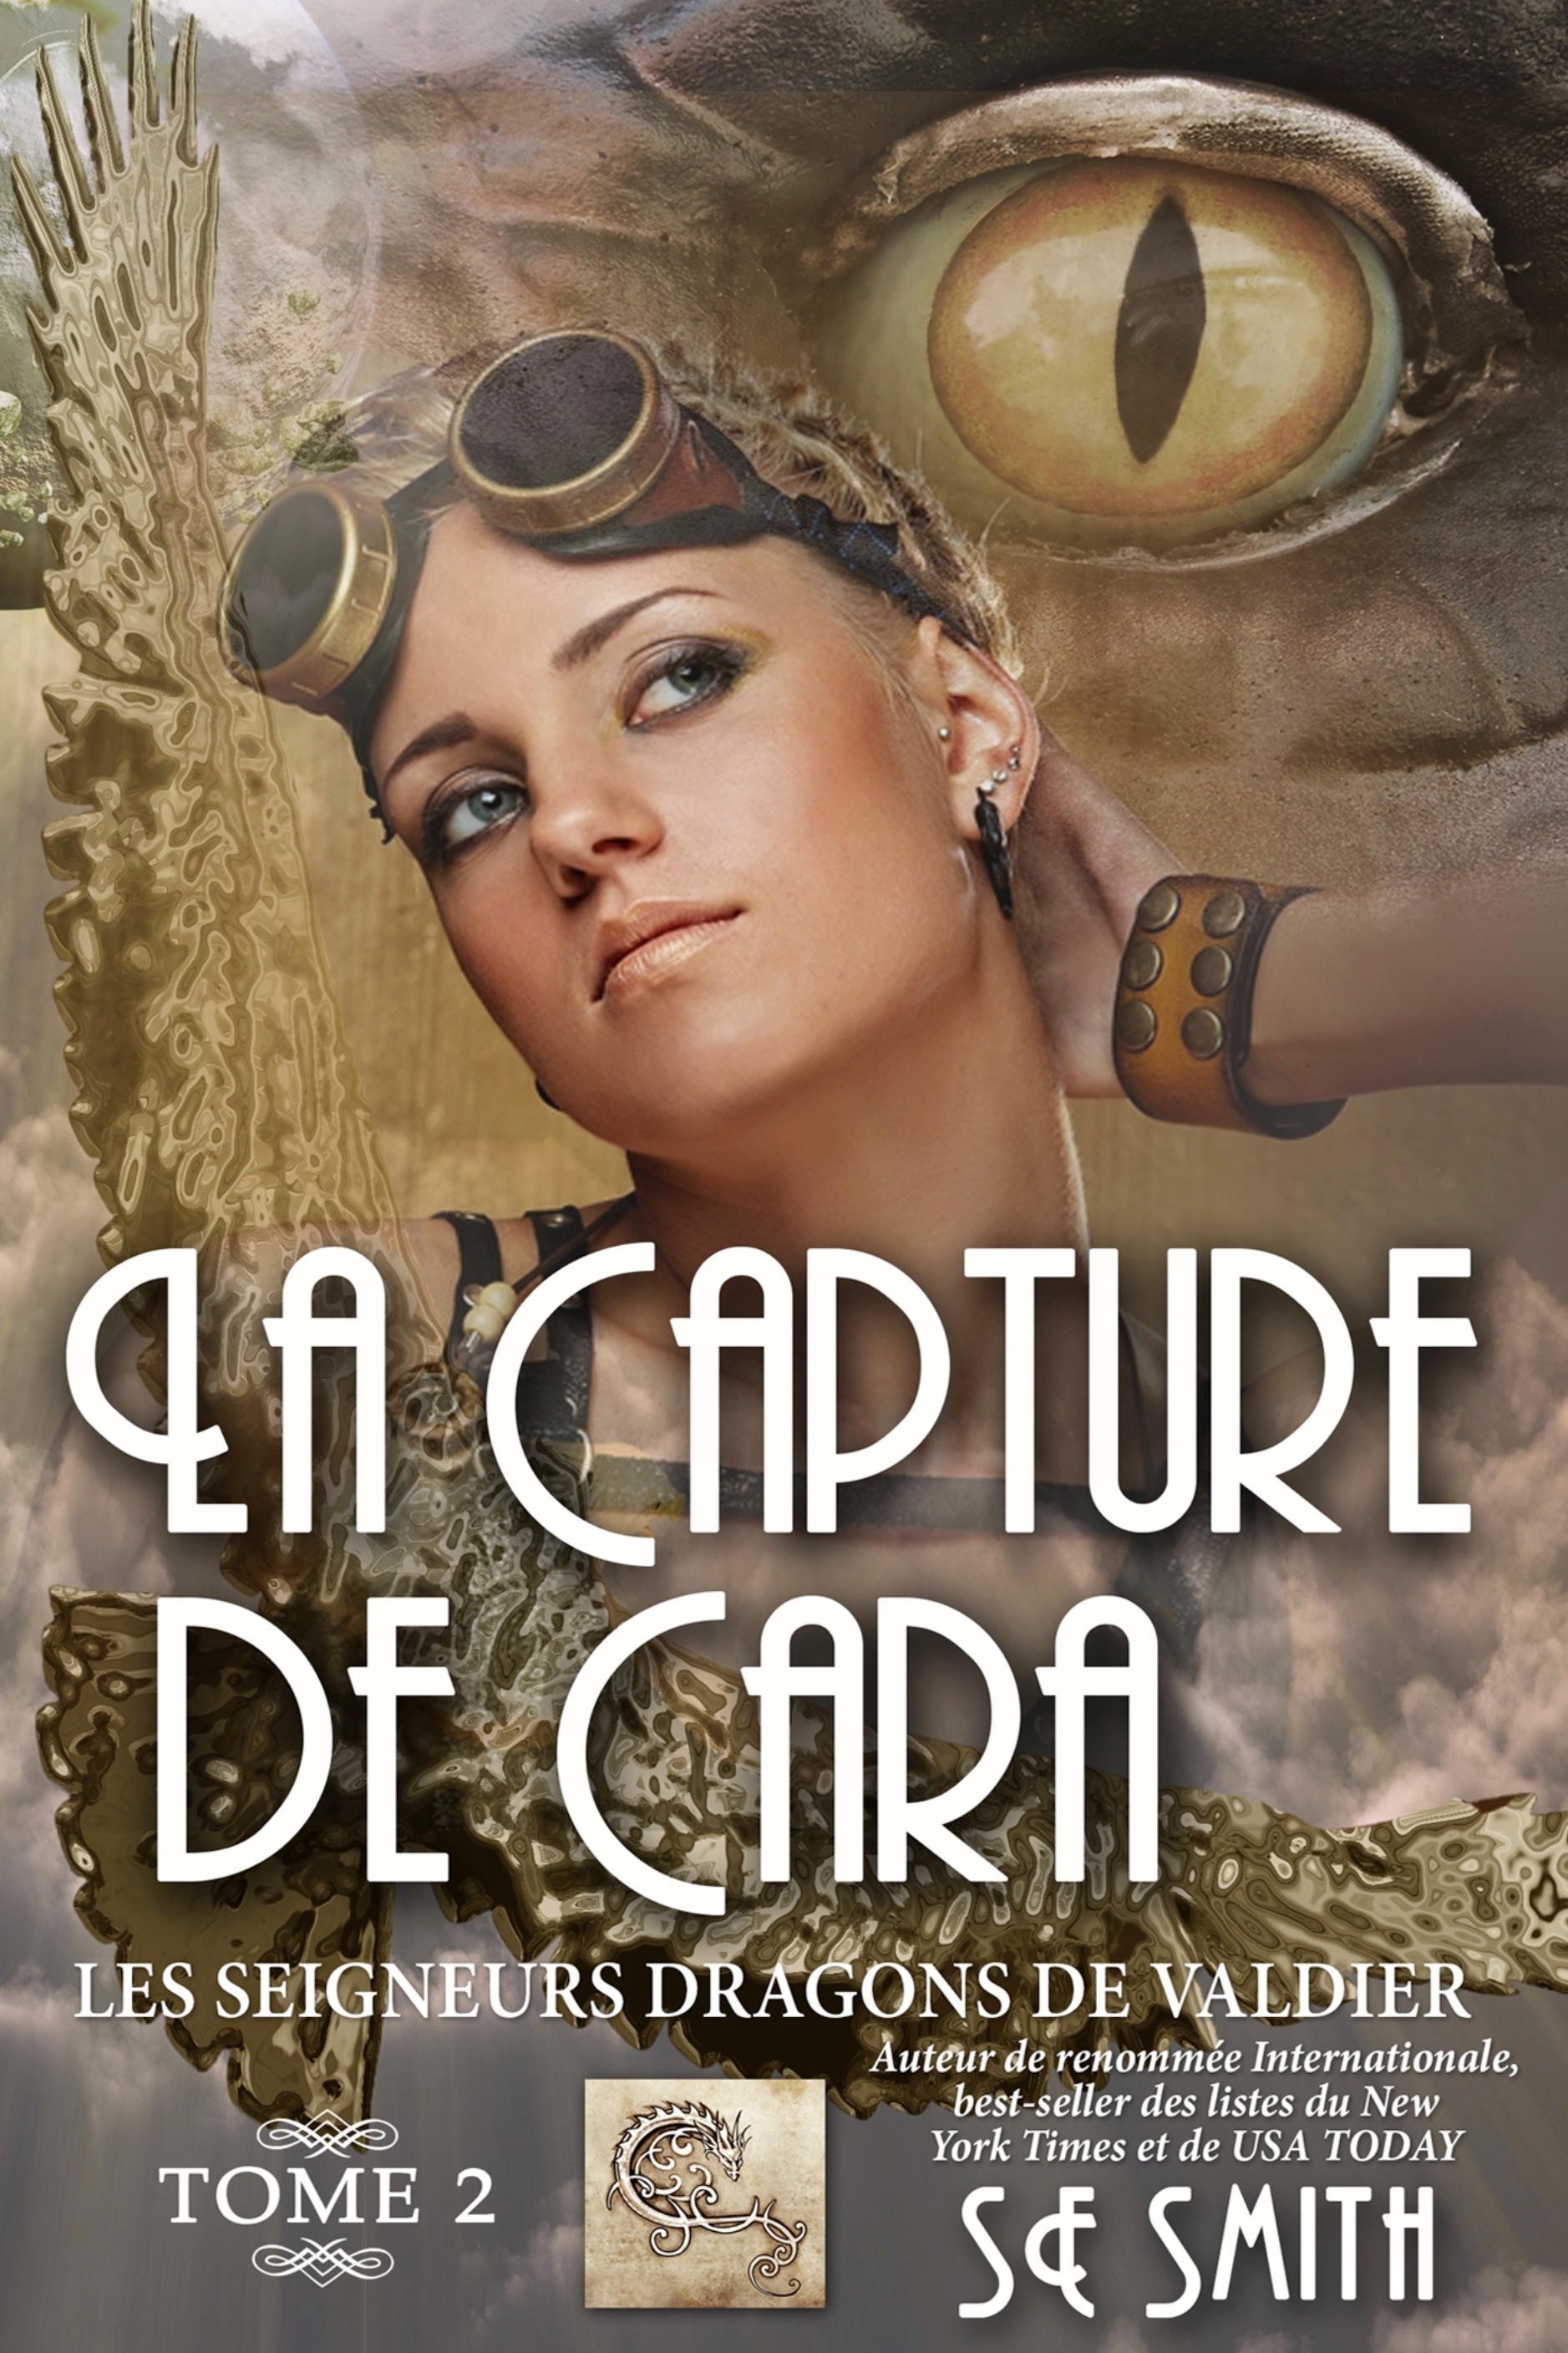 LA CAPTURE DE CARA: LES SEIGNEURS DRAGONS DE VALDIER TOME 2 (ebook: Kindle et epub)